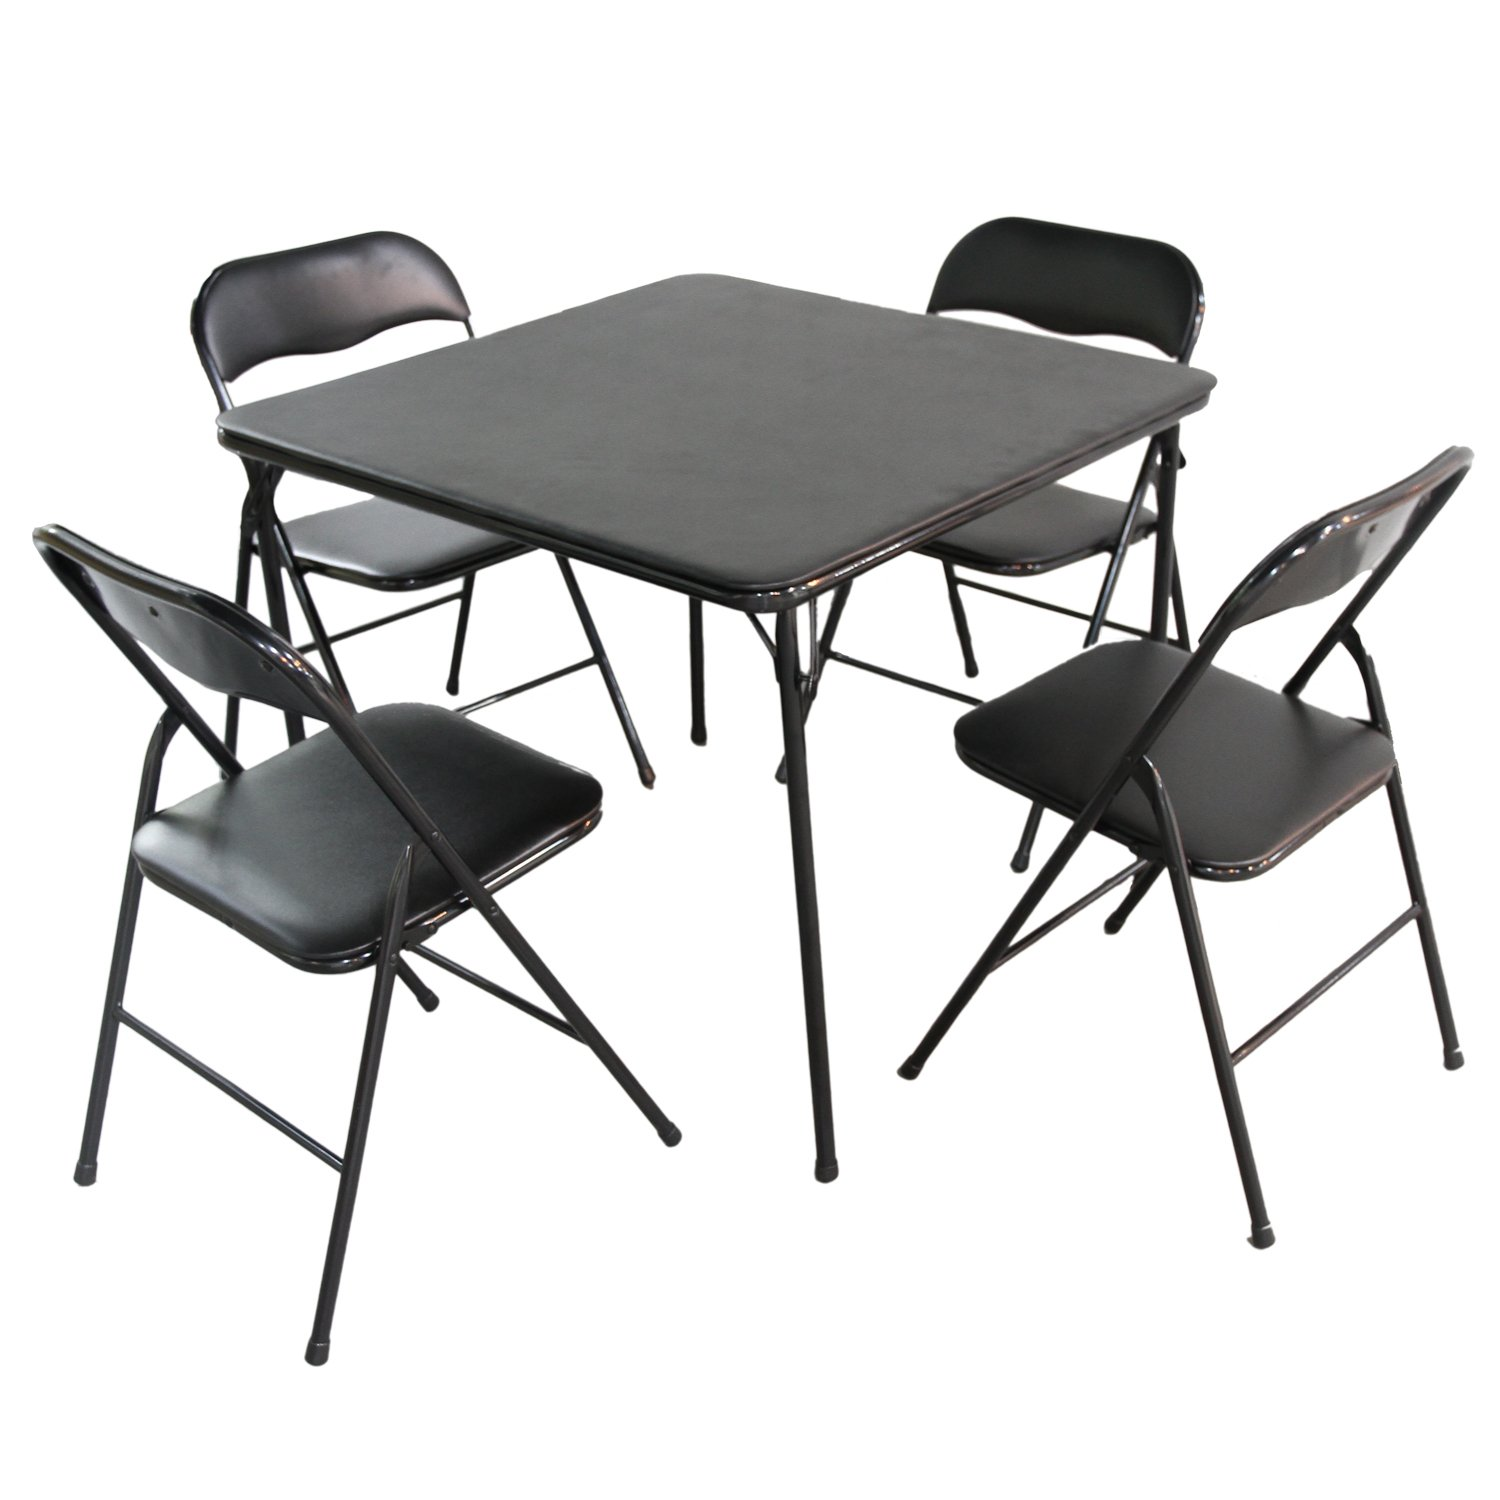 Edeco 5-piece Folding Table and Chair Set, Black by Edeco